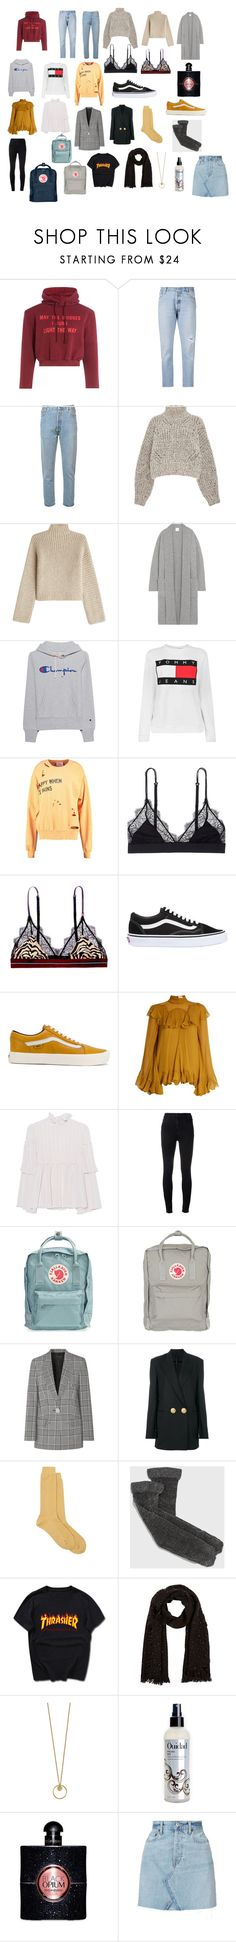 """""""triplistt"""" by rutguyman on Polyvore featuring Vetements, RE/DONE, Isabel Marant, Rosetta Getty, Madeleine Thompson, Champion, Tommy Hilfiger, LoveStories, Vans and Chloé"""